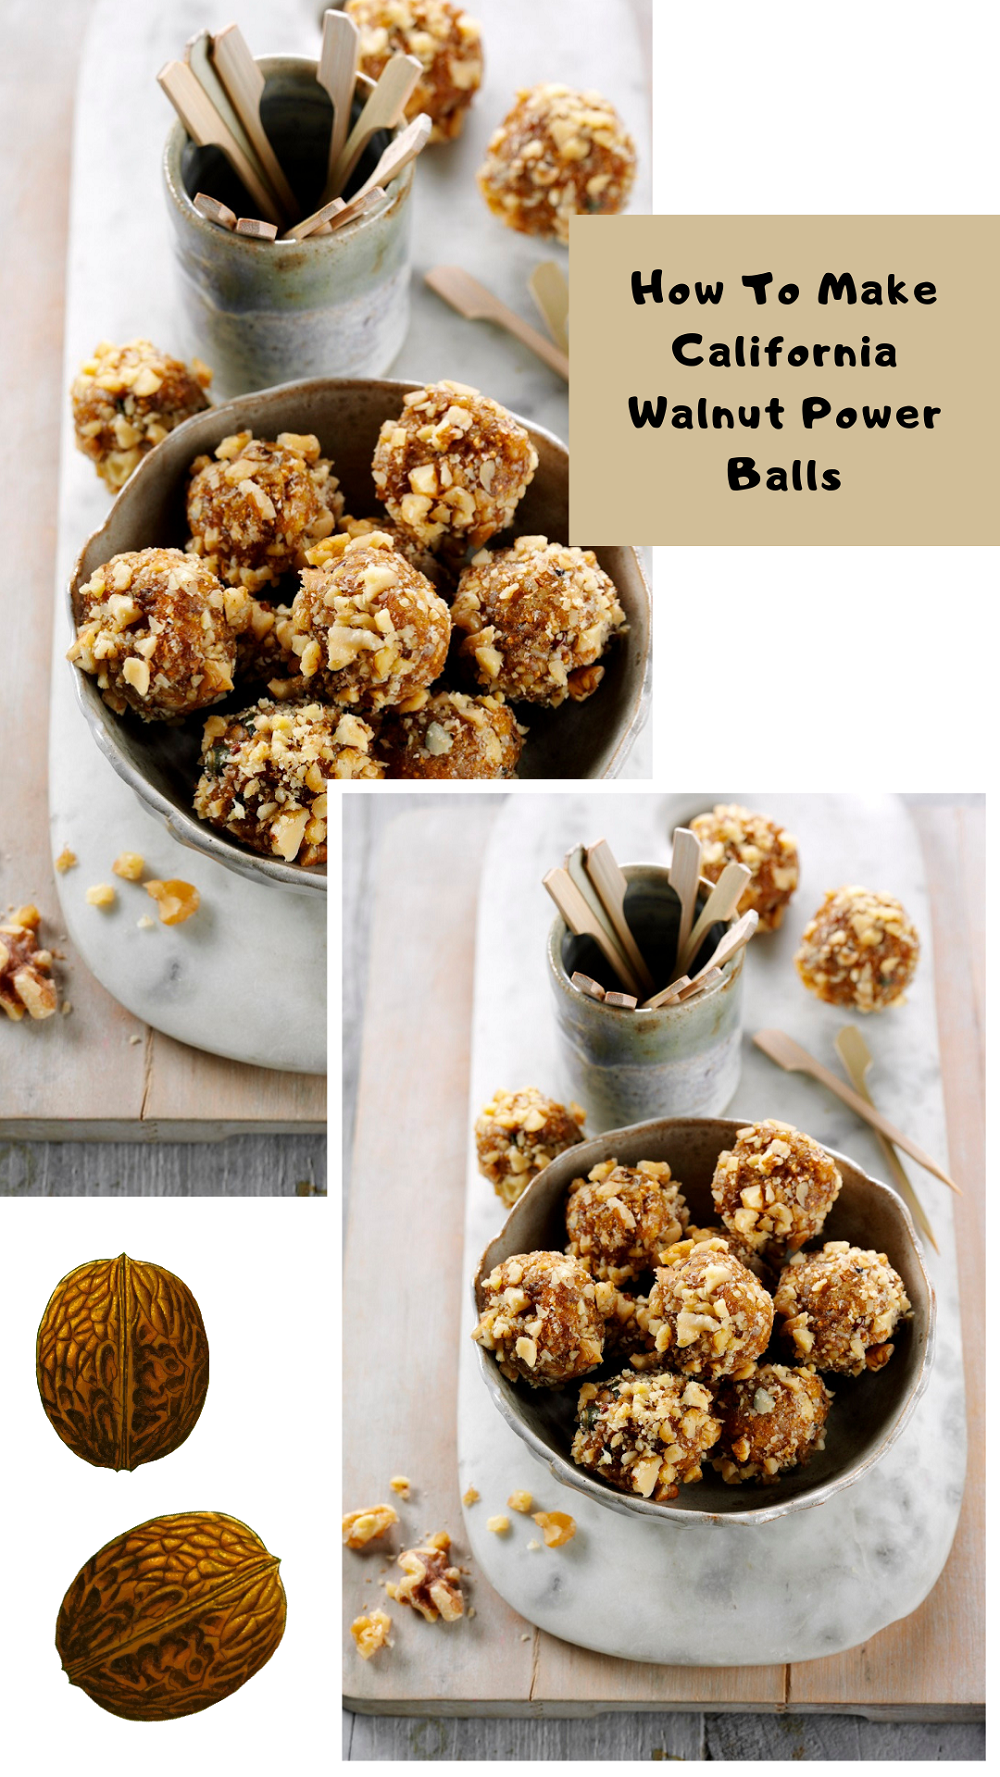 California Walnut Power Balls: